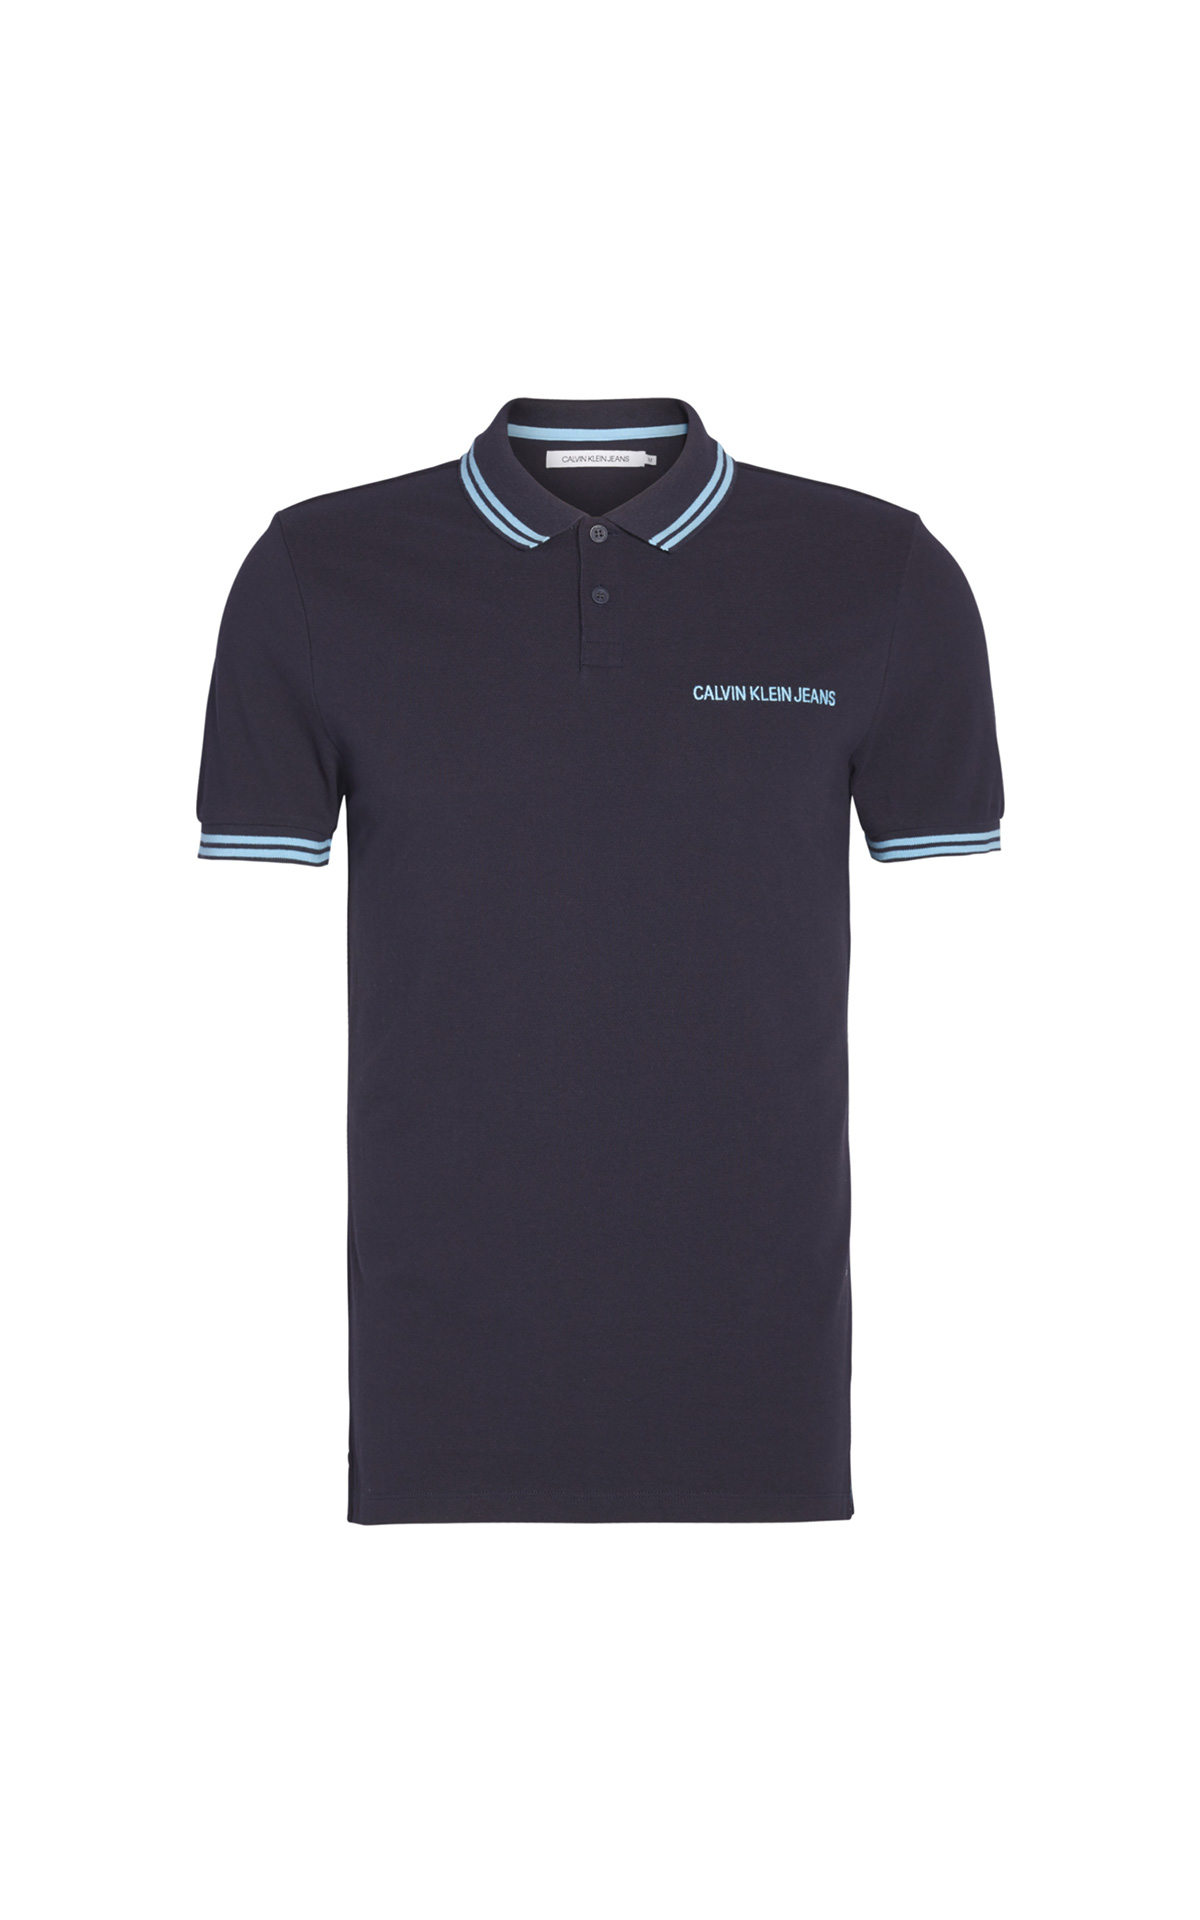 Calvin Klein polo shirt at The Bicester Village Shopping Collection